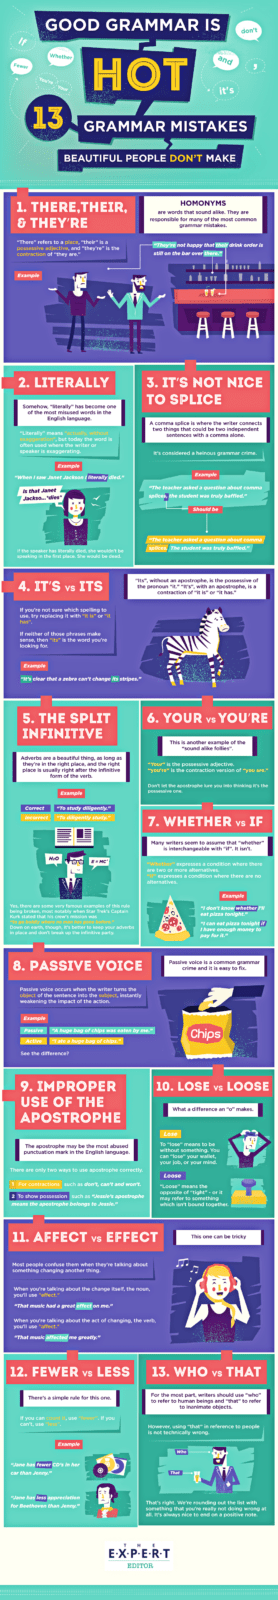 Most Common Grammar Mistakes that Native English Speakers Make